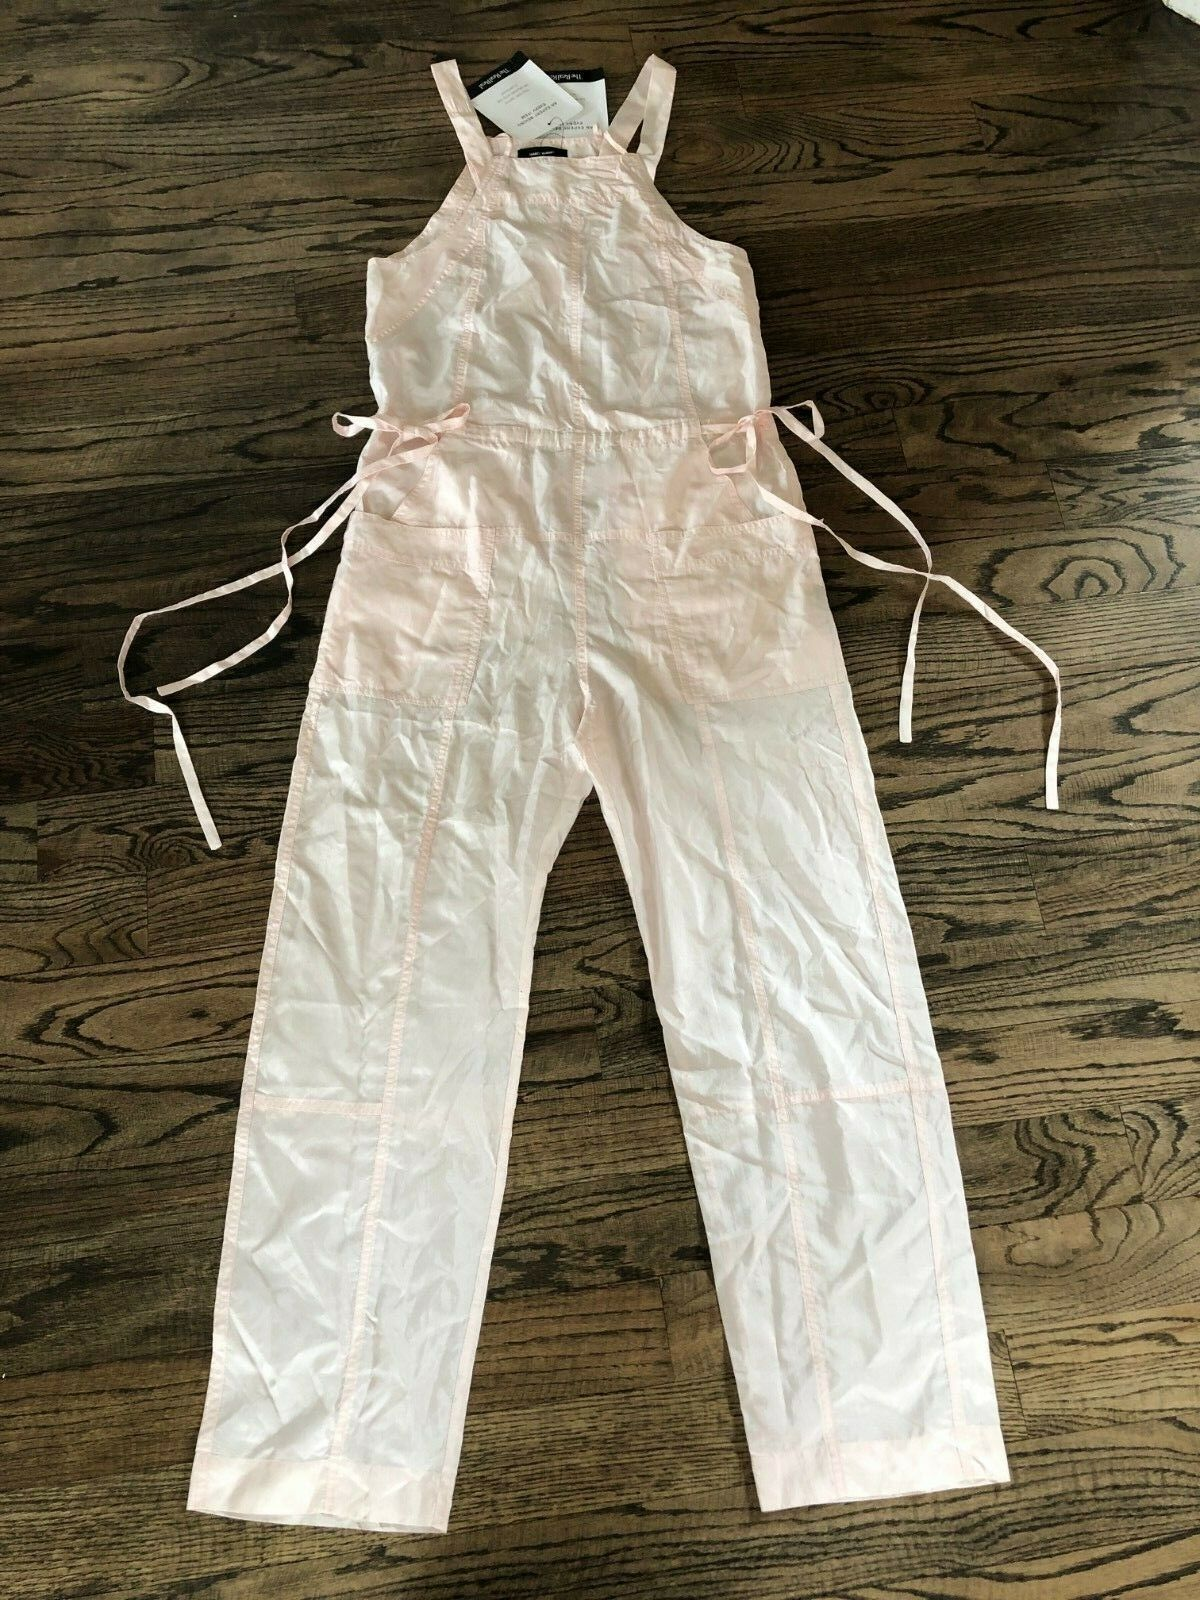 Isabel Marant Sporty Silk Kyles Jumpsuit Runway Light Pink Sz 4 NWT MSRP  1,015